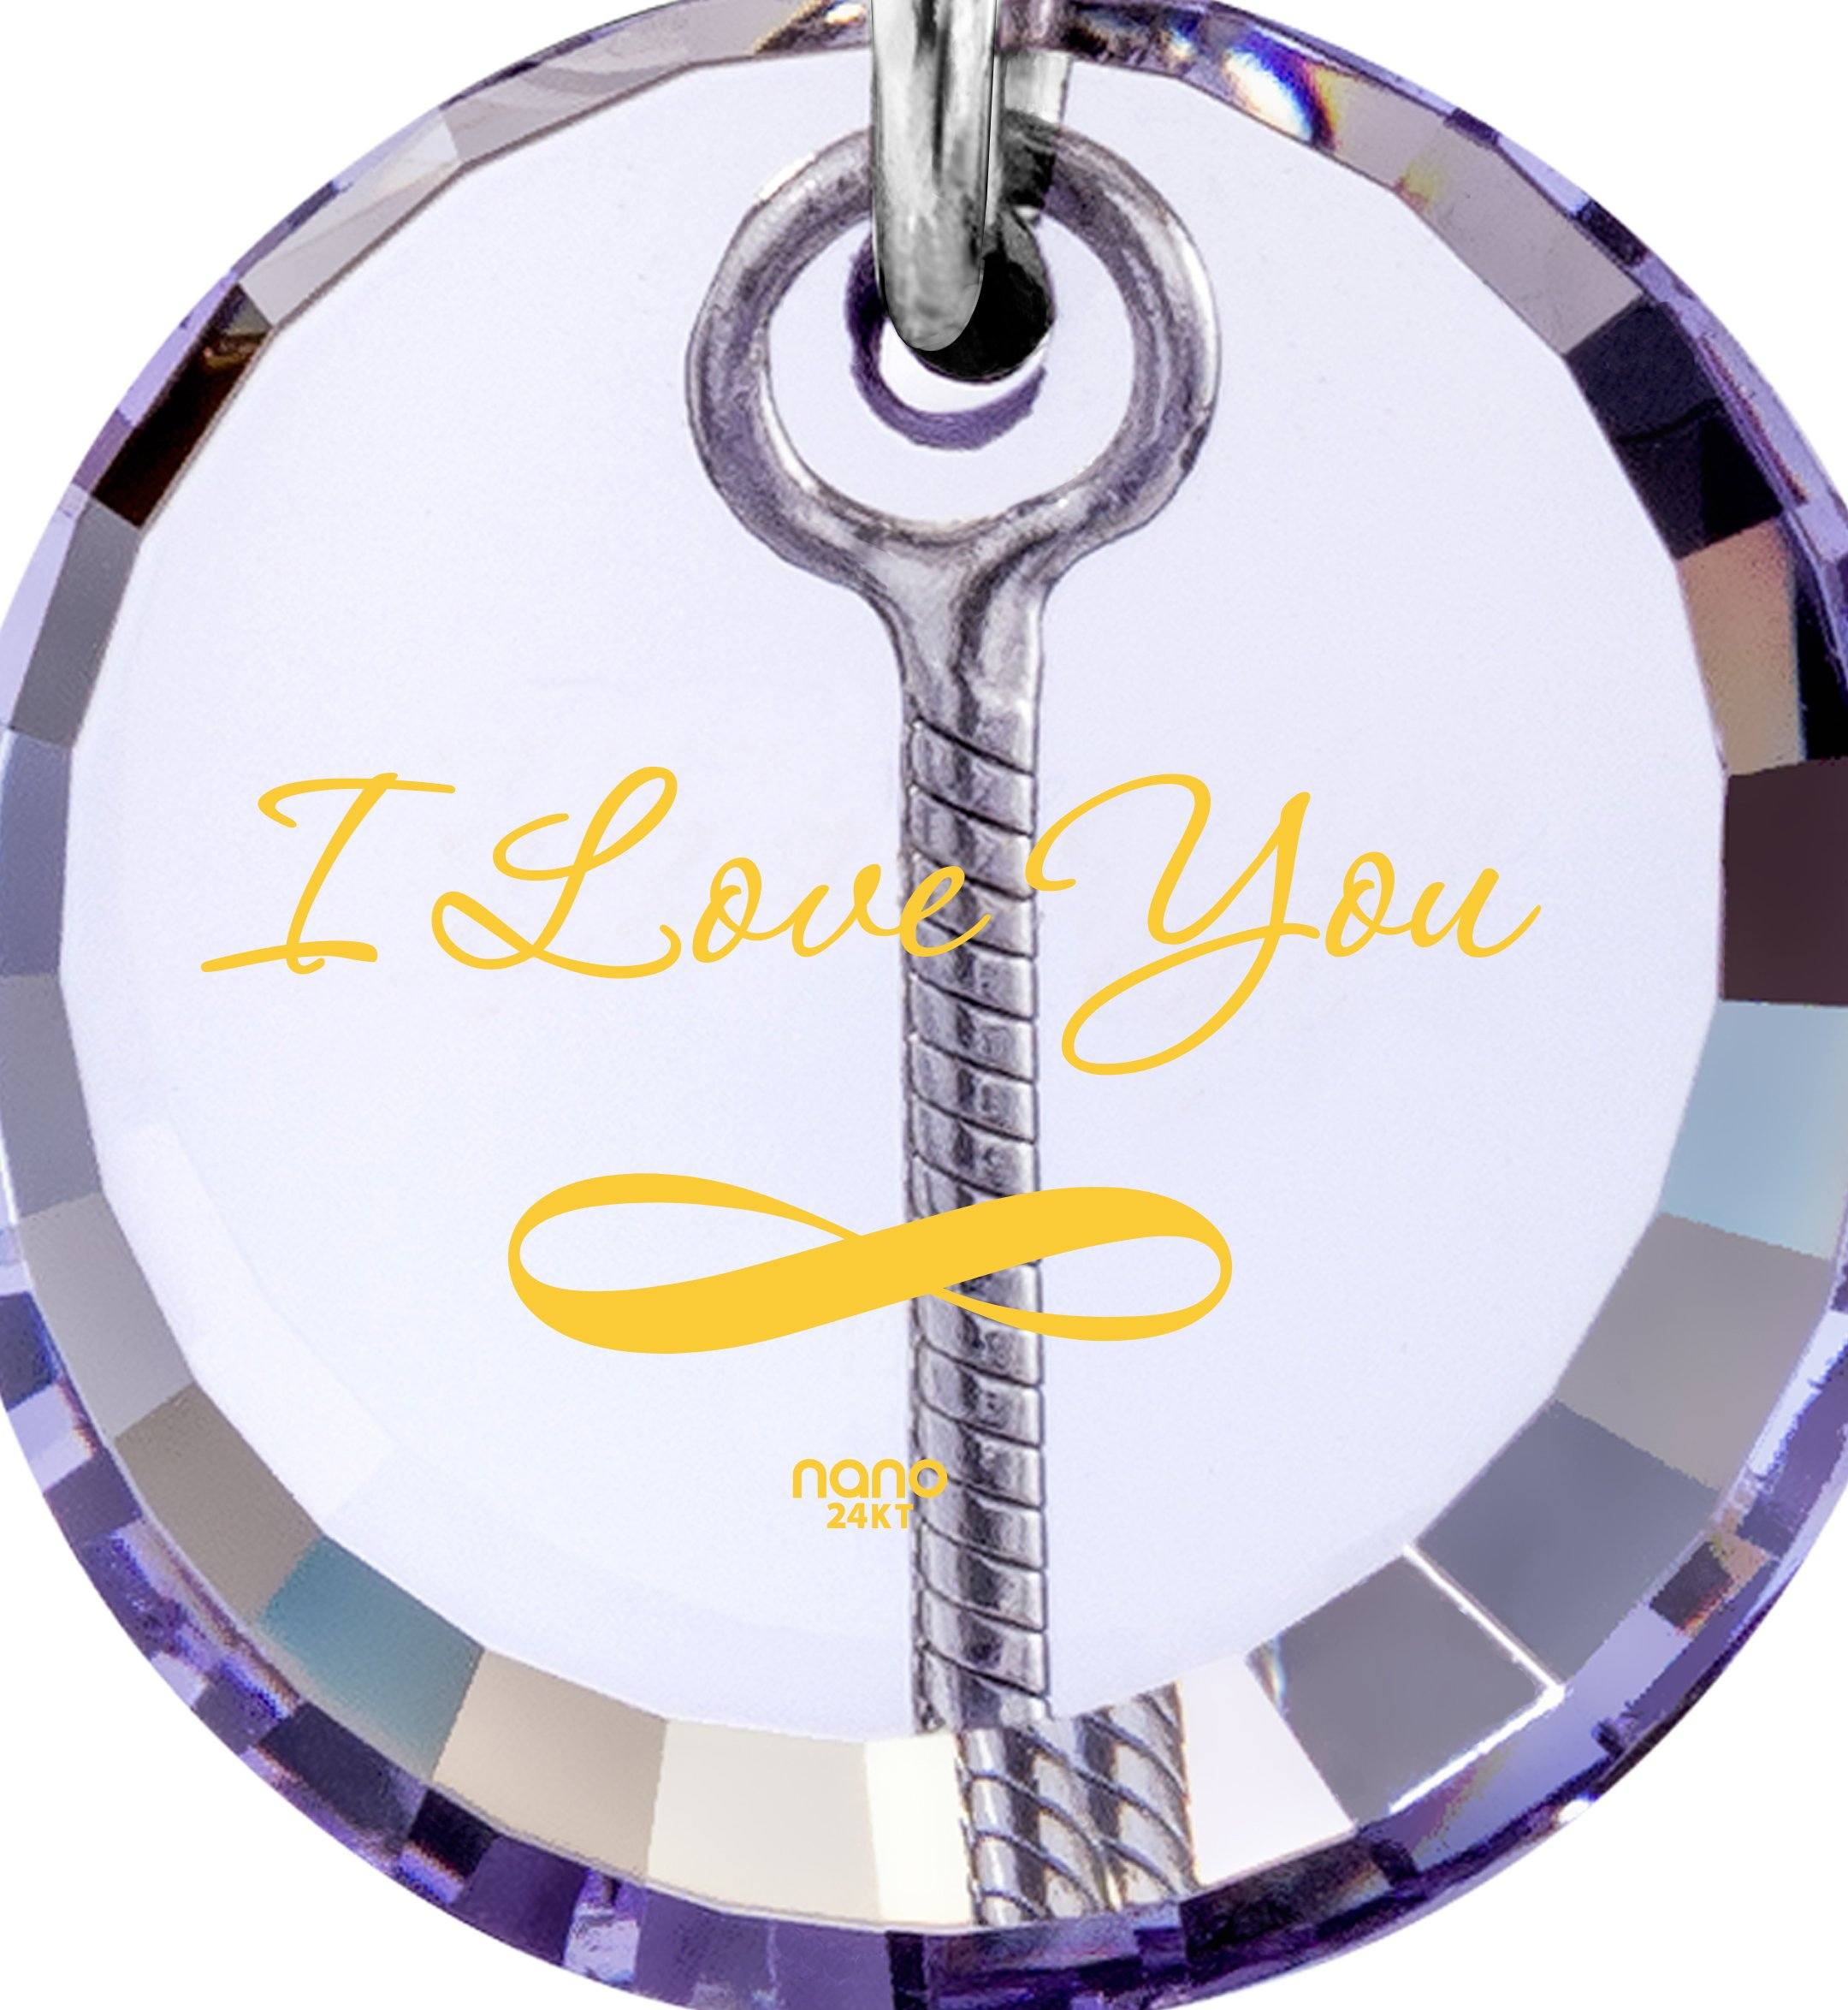 I Love You to the Moon and Back Gifts: Valentines Ideas for Her, Good Birthday Gifts for Girlfriend, Nano Jewelry